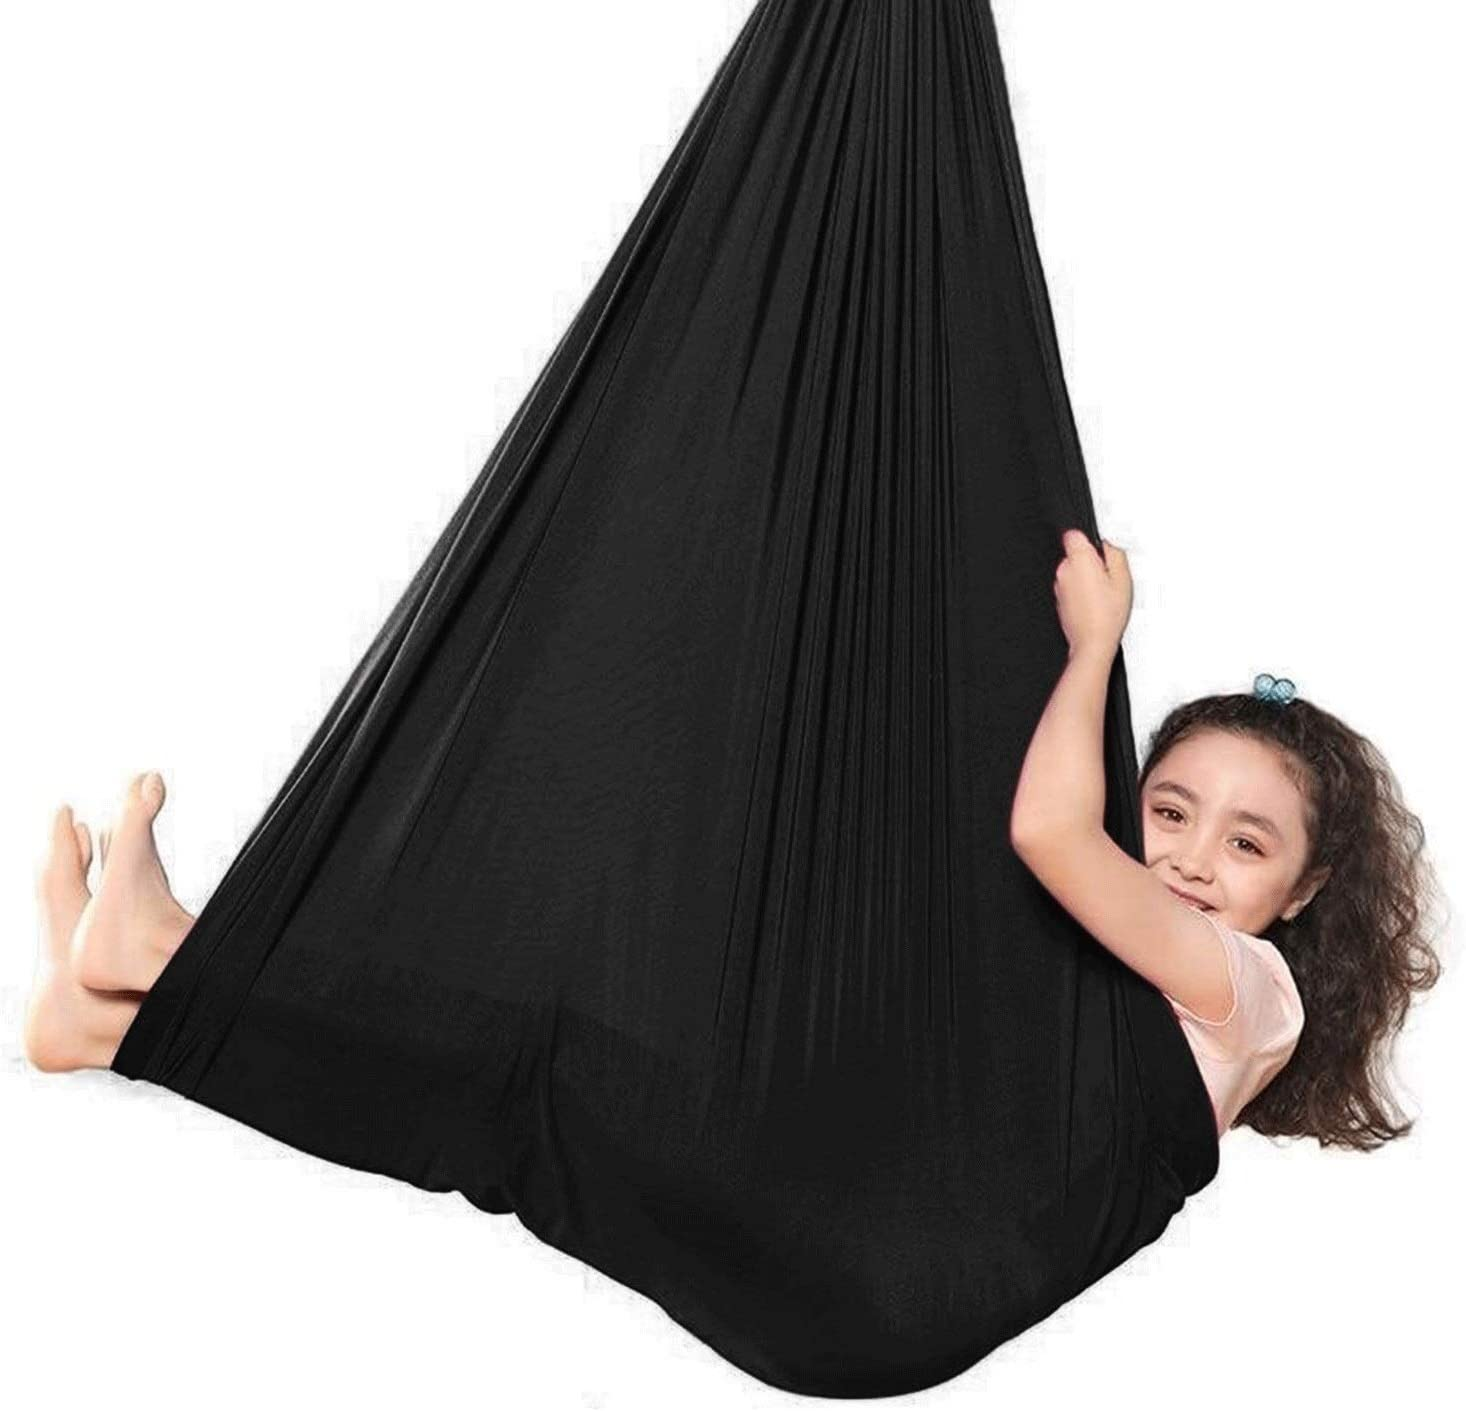 YXYH Indoor Therapy Some reservation Swing Hanging Hammock Calming On Effect A High quality new Ch